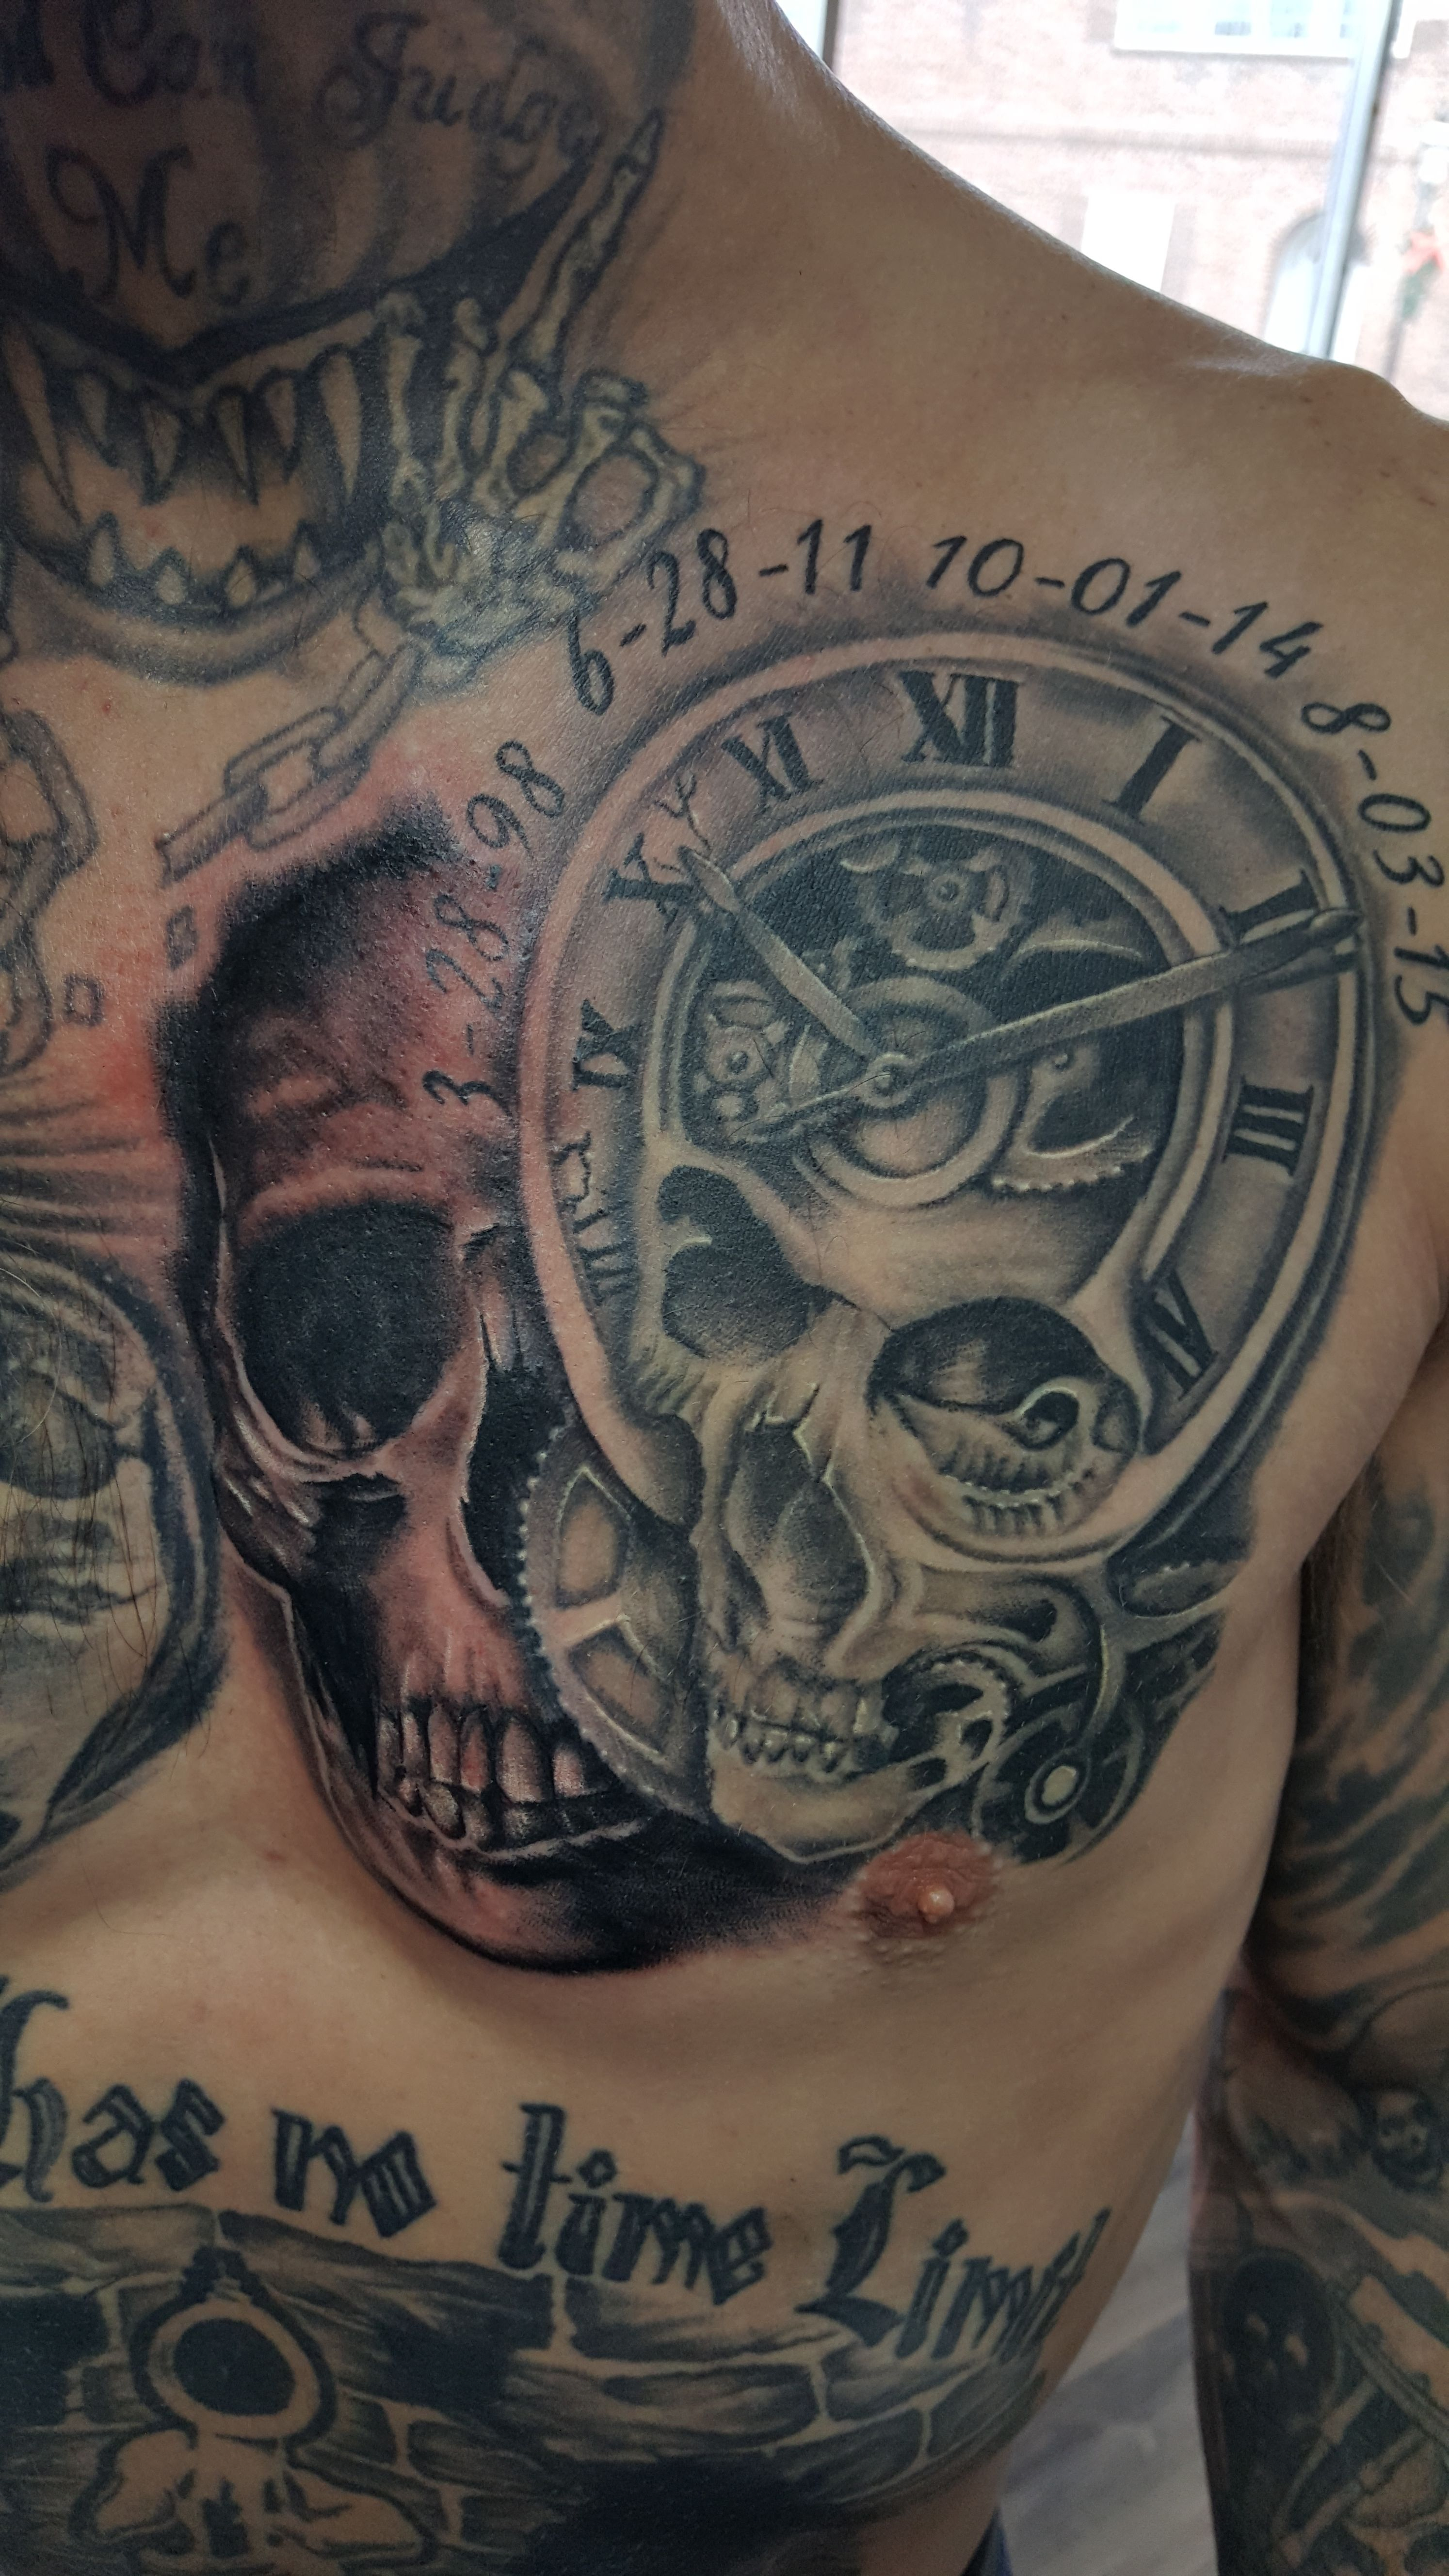 Skull Chest Tattoo Tattoos Jeffery Moon Tattoos Chest throughout dimensions 2988 X 5312